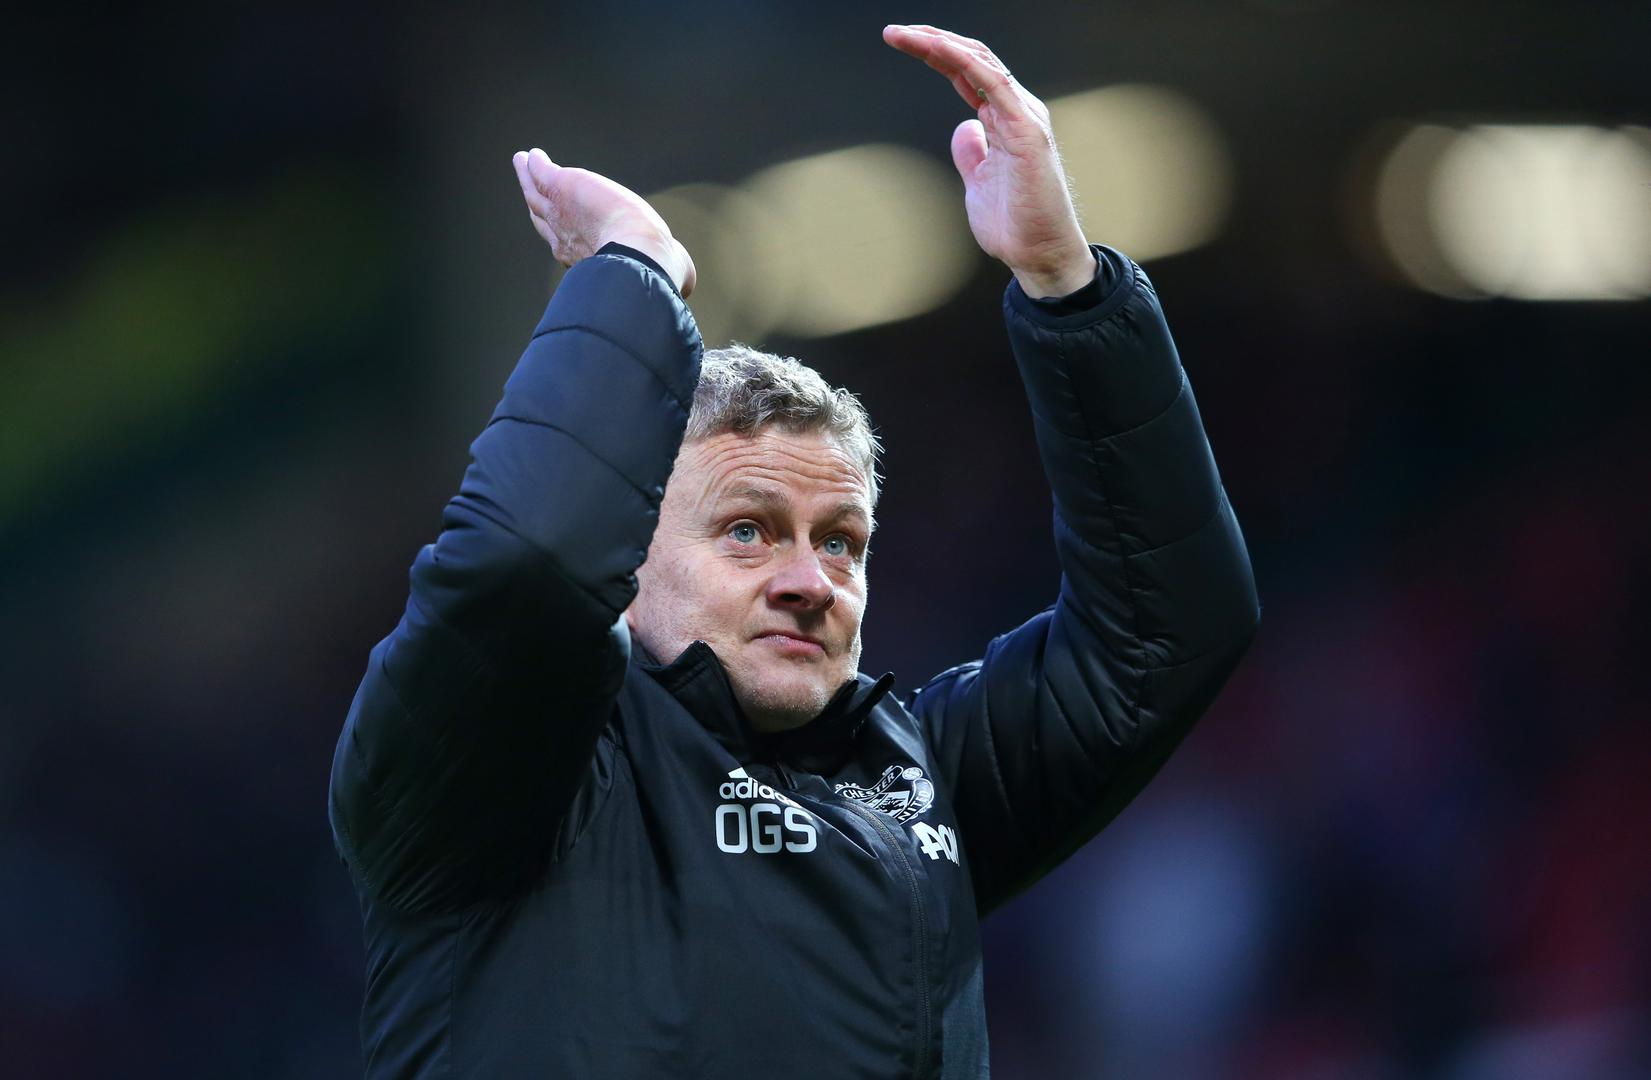 Ole Gunnar Solskjaer claps the Manchester United fans at Old Trafford